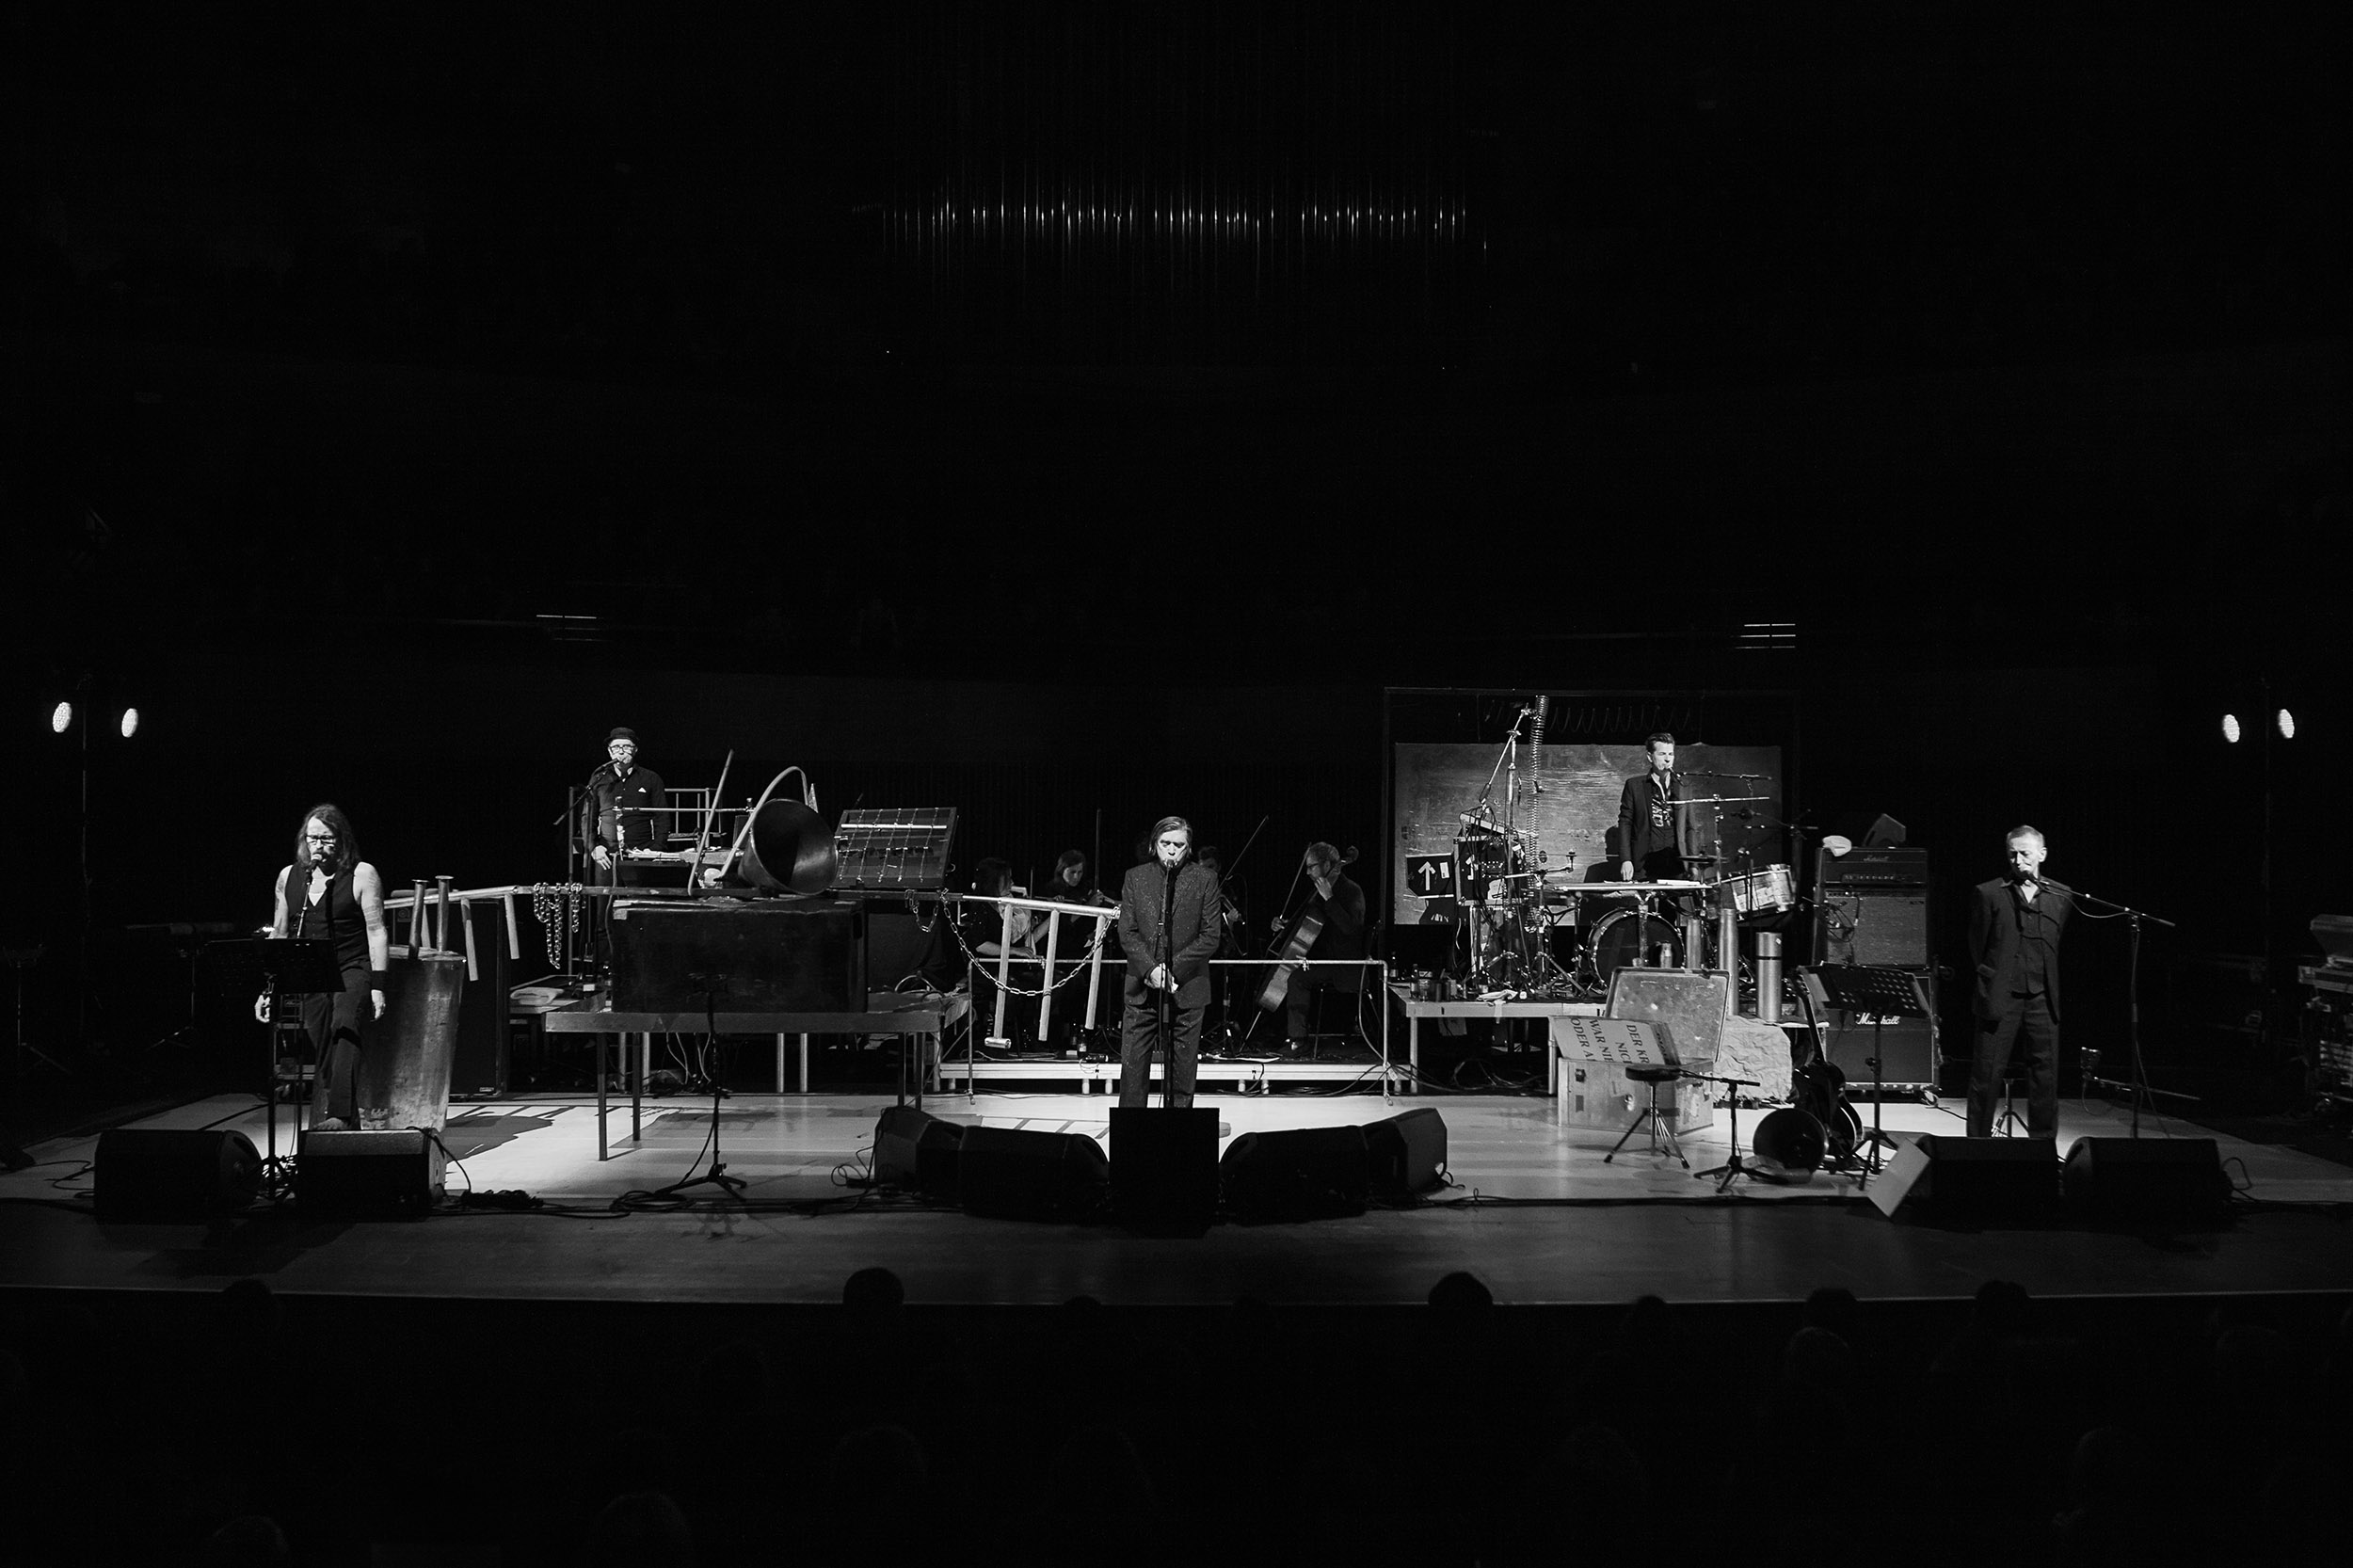 Einstürzende Neubauten (photo by Morten Aagaard Krogh / mortenkrogh.com)